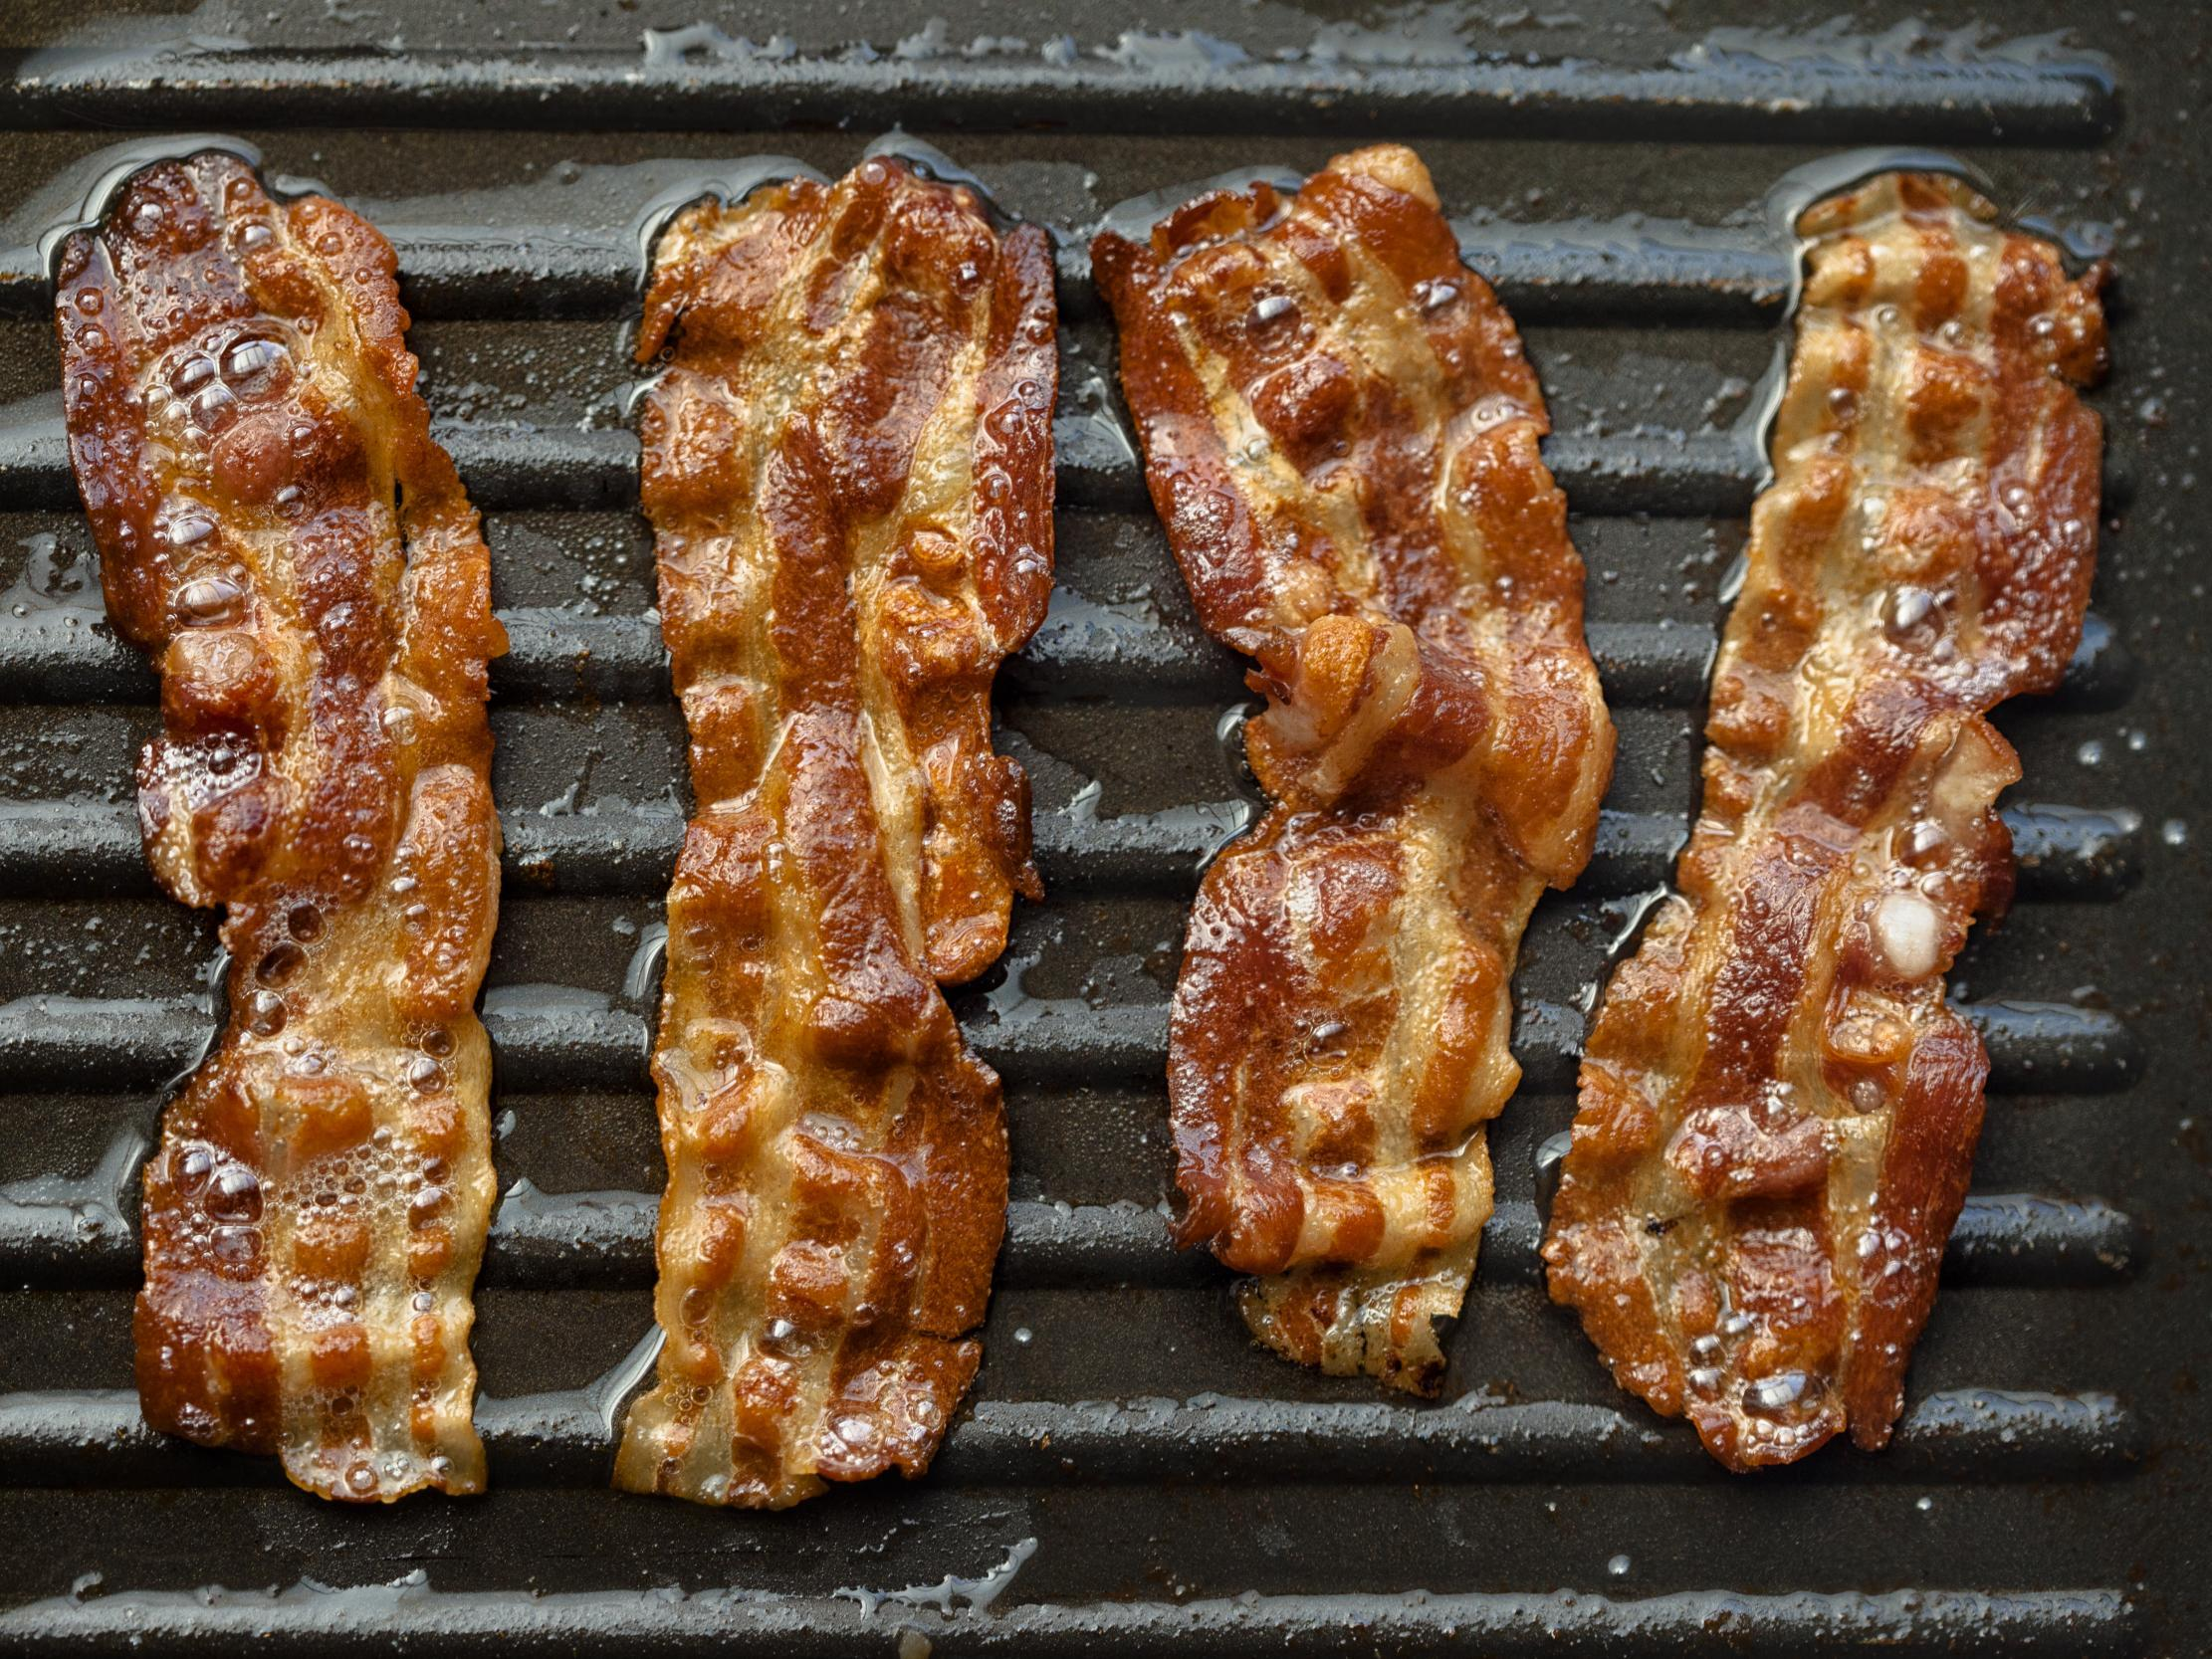 Yes, I know you love bacon – but that's no excuse for the things we do to pigs